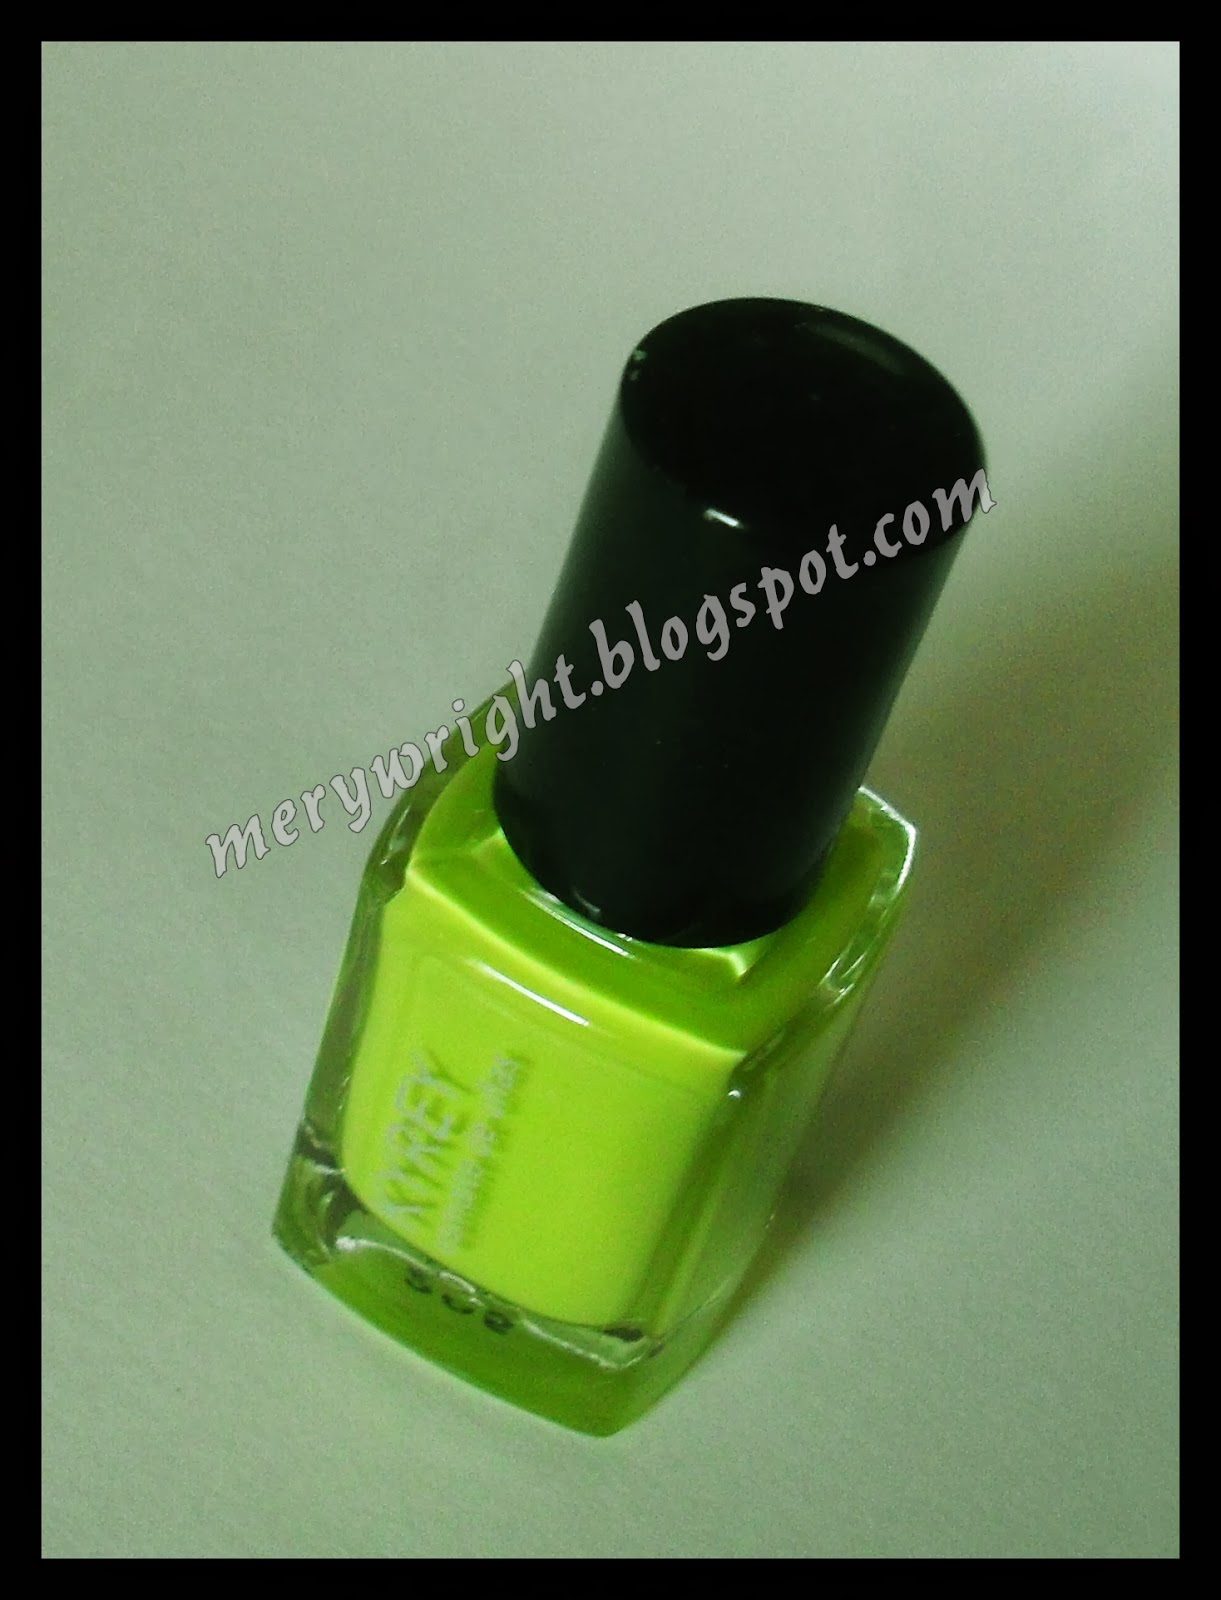 center>Esmalte de uñas, KYREY. </center> - Mery Wright